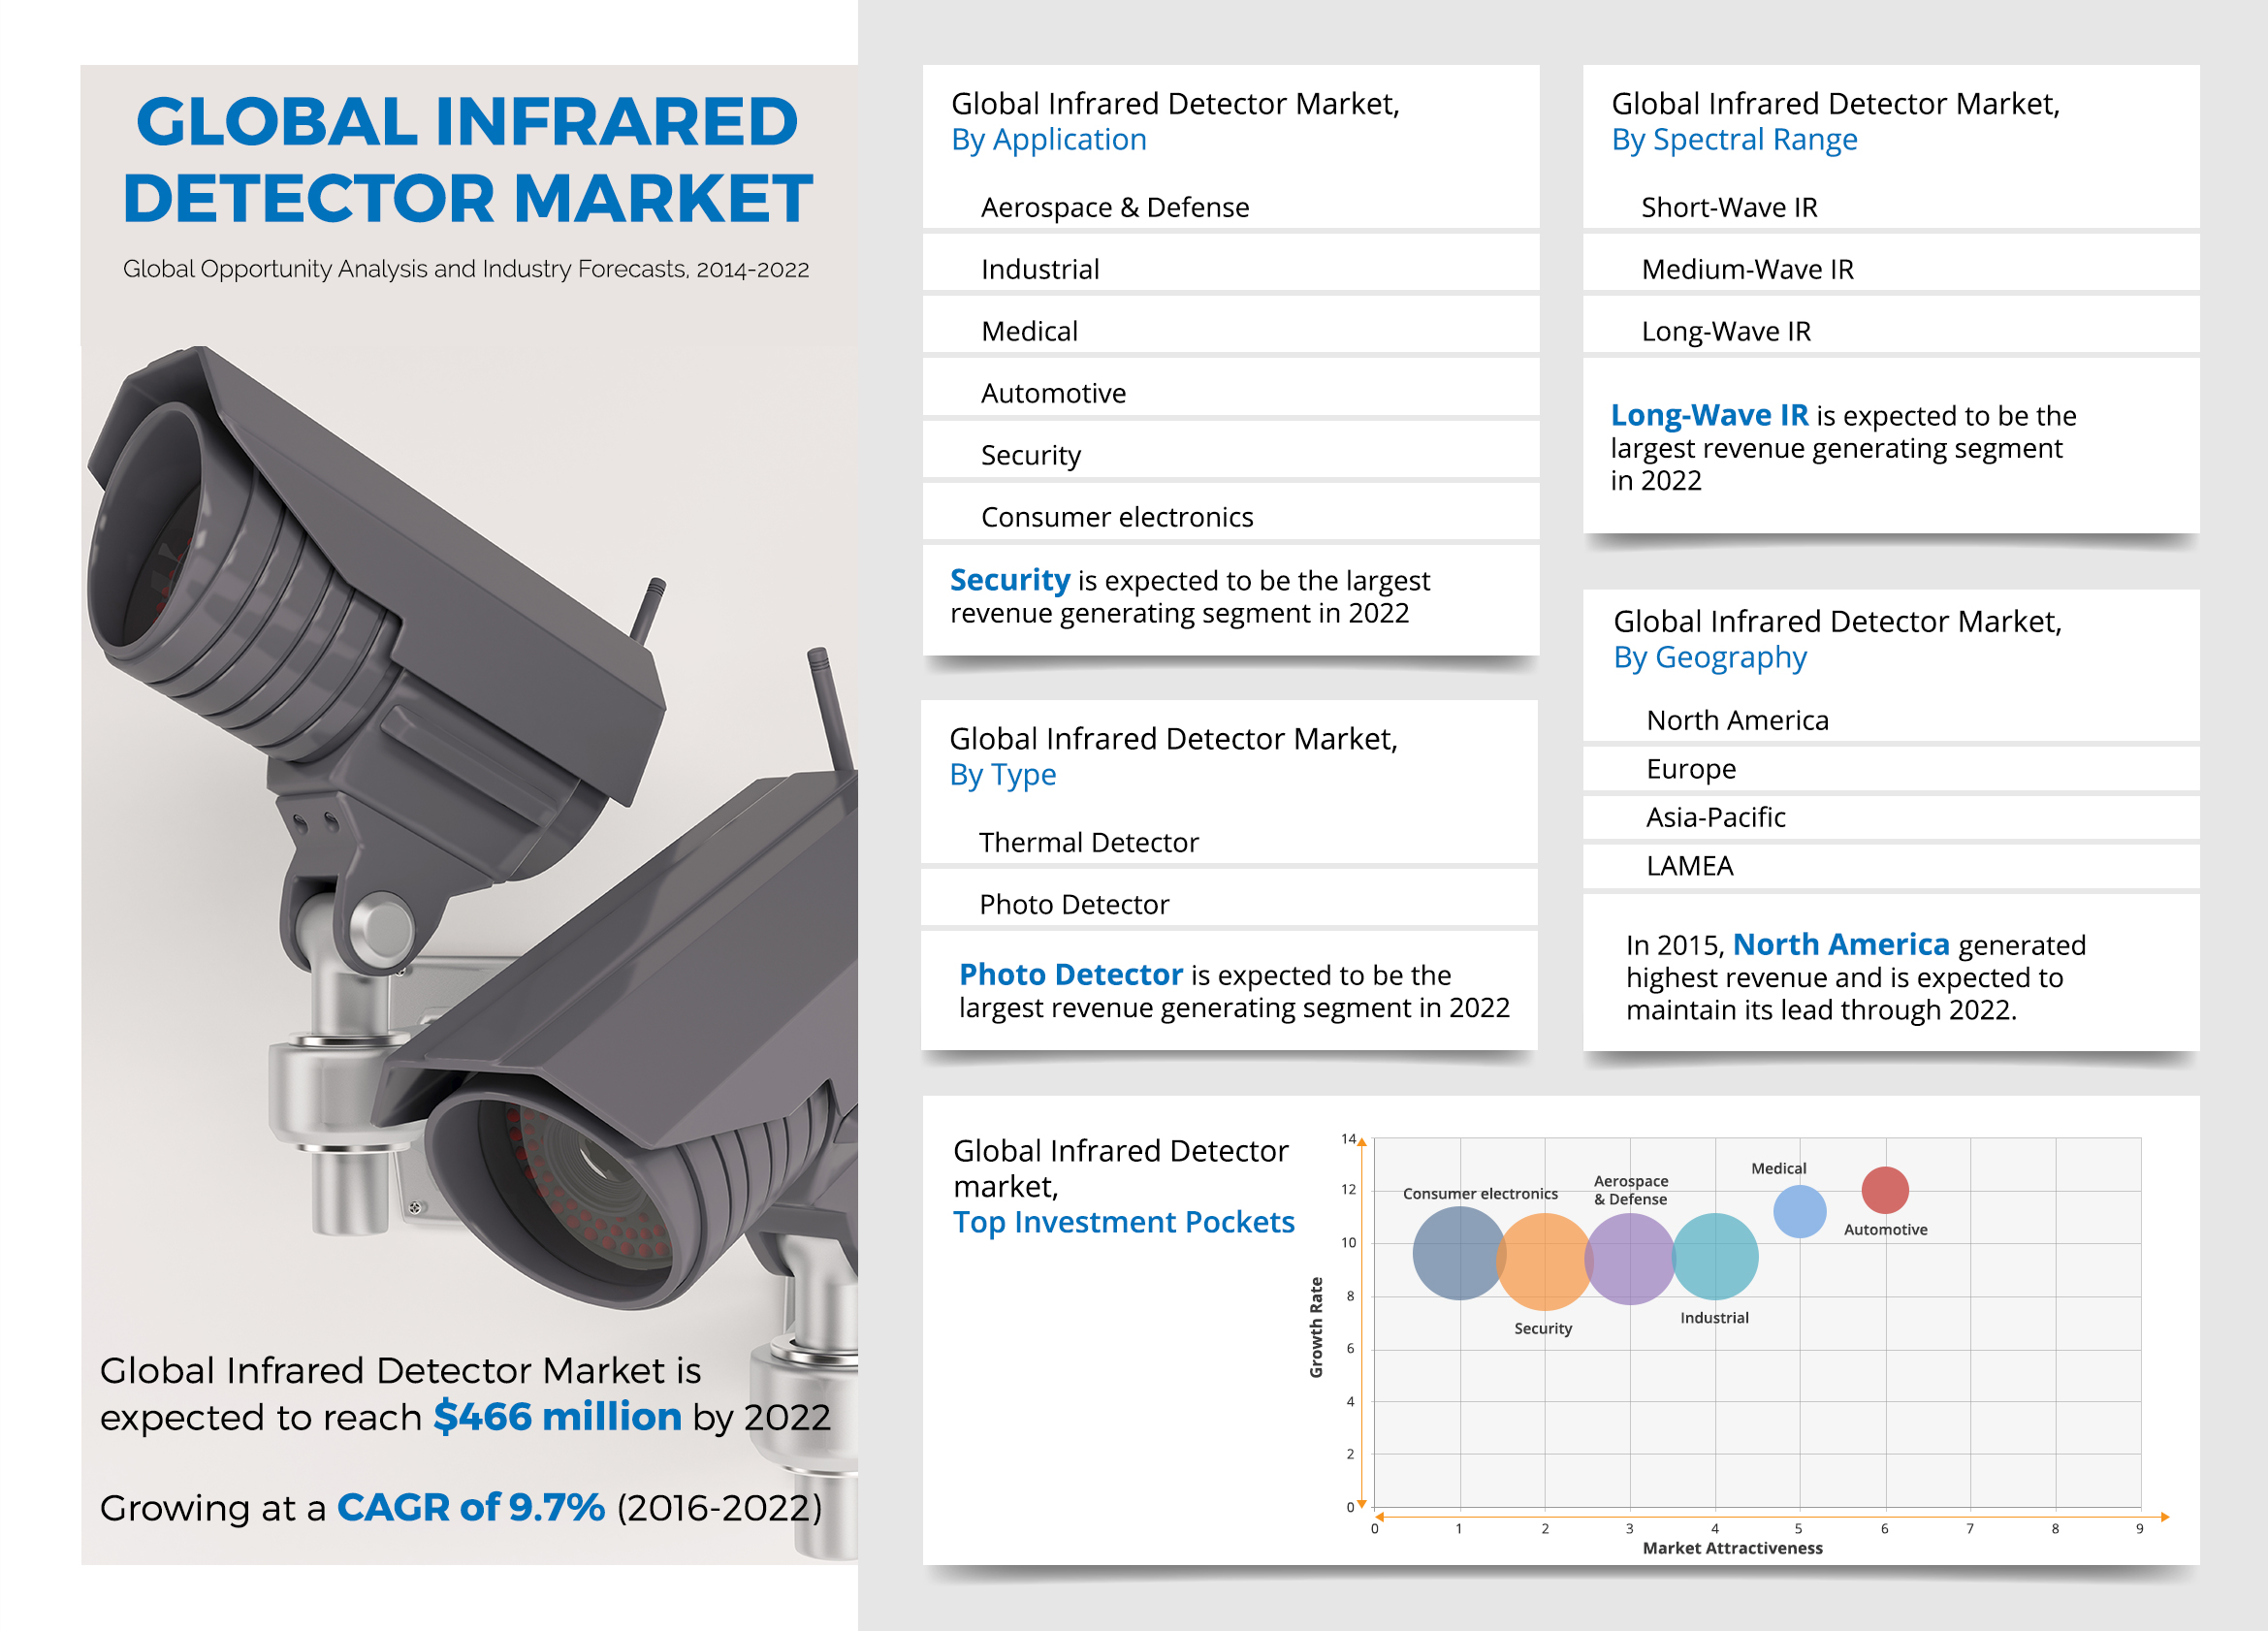 Global Infrared Detector Market